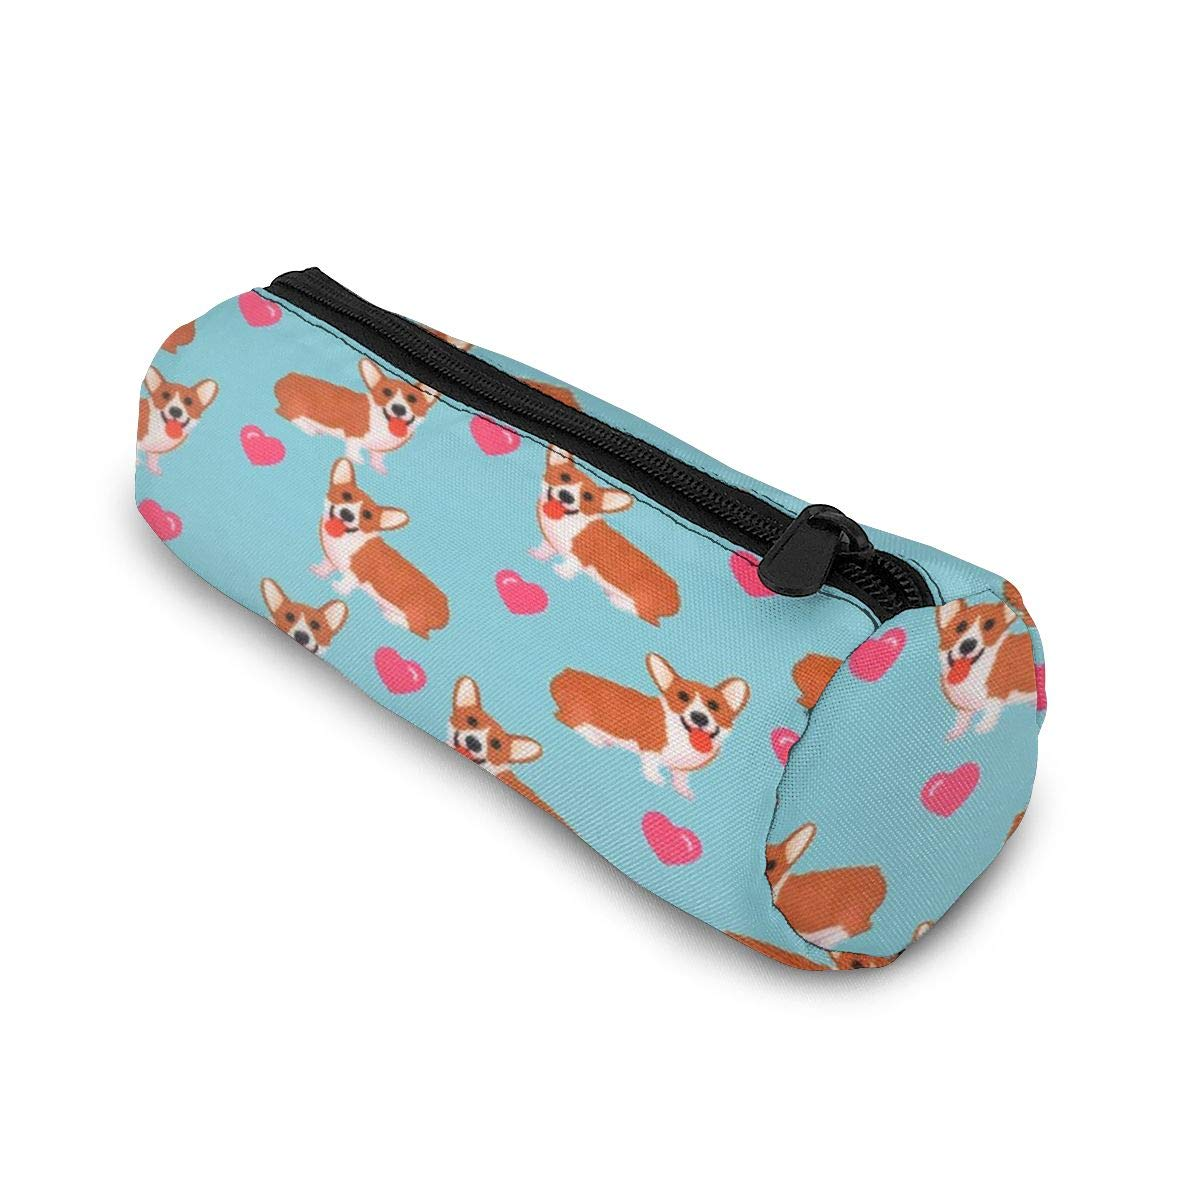 Pencil Case with Zipper, Hearts Corgi Dog Middle Capacity Pen Case Durable Pen Bag Office Stationery Bag Portable Cosmetic Bag for Girls Boys and Adults